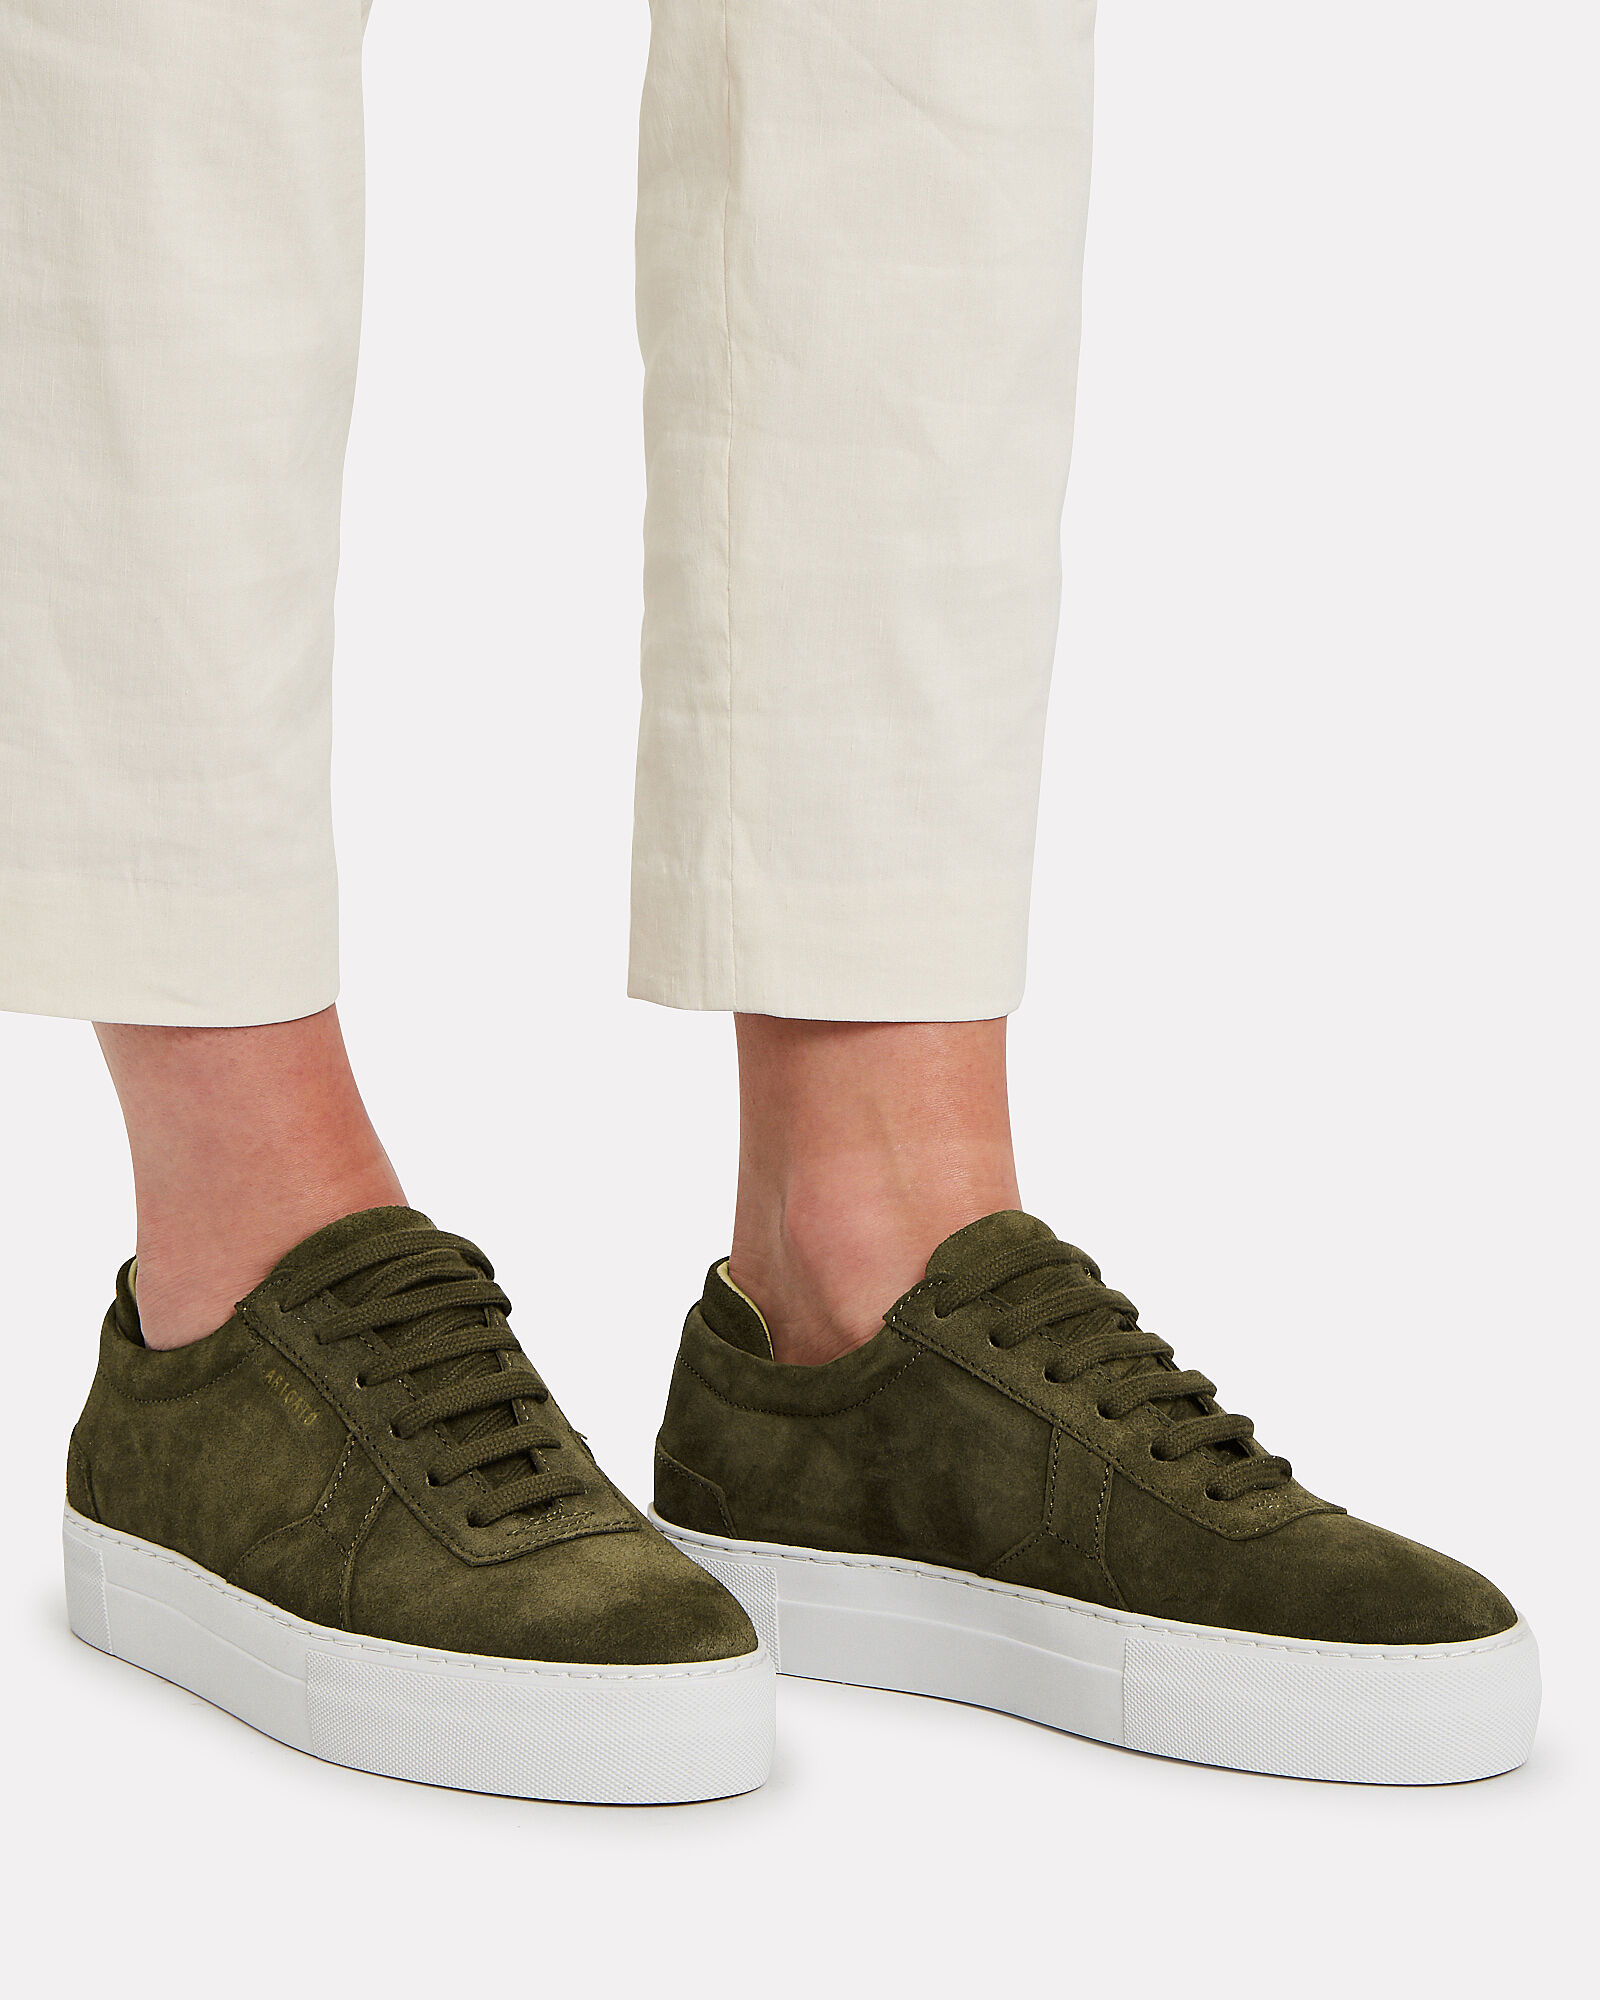 Platform Low-Top Suede Sneakers, OLIVE/ARMY, hi-res